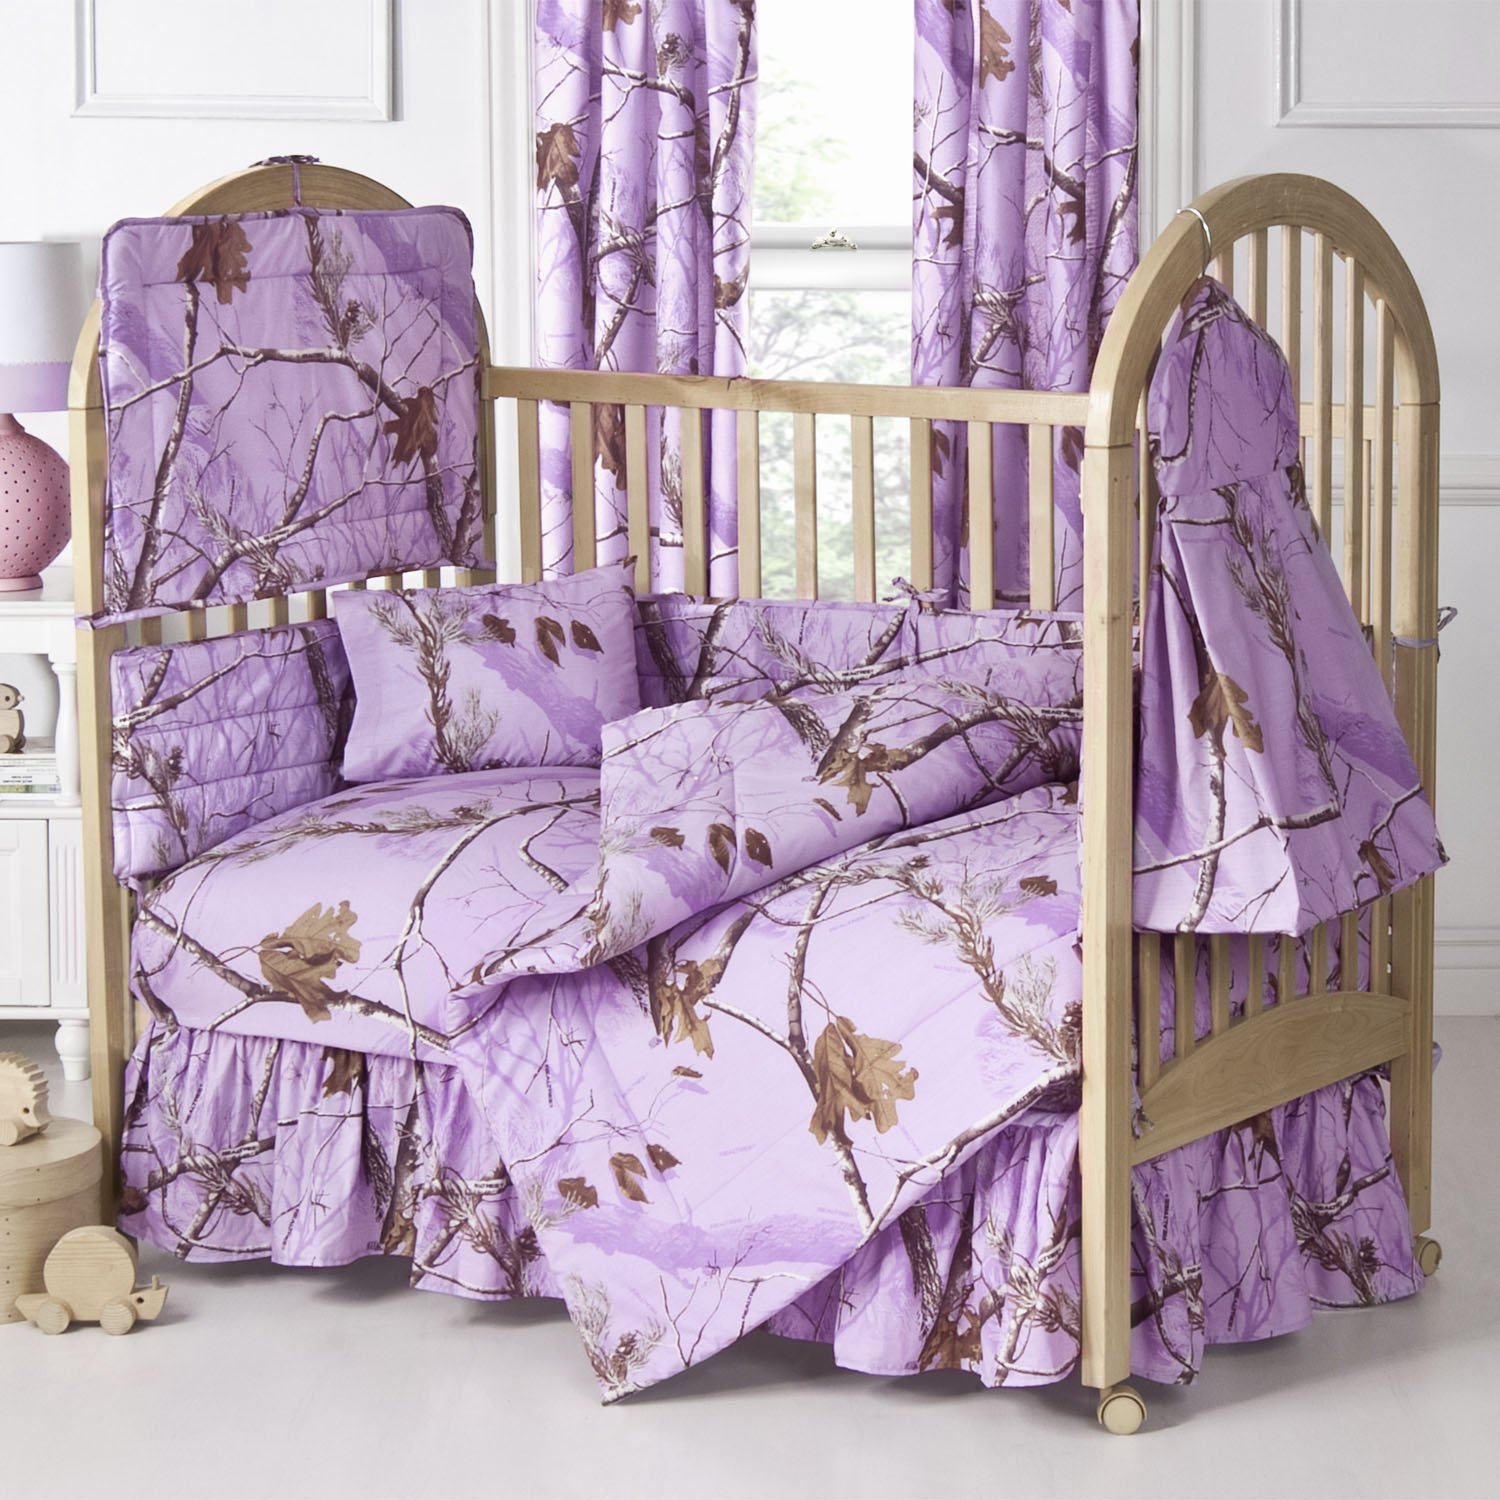 Camouflage Baby Bedding Totally Kids Totally Bedrooms